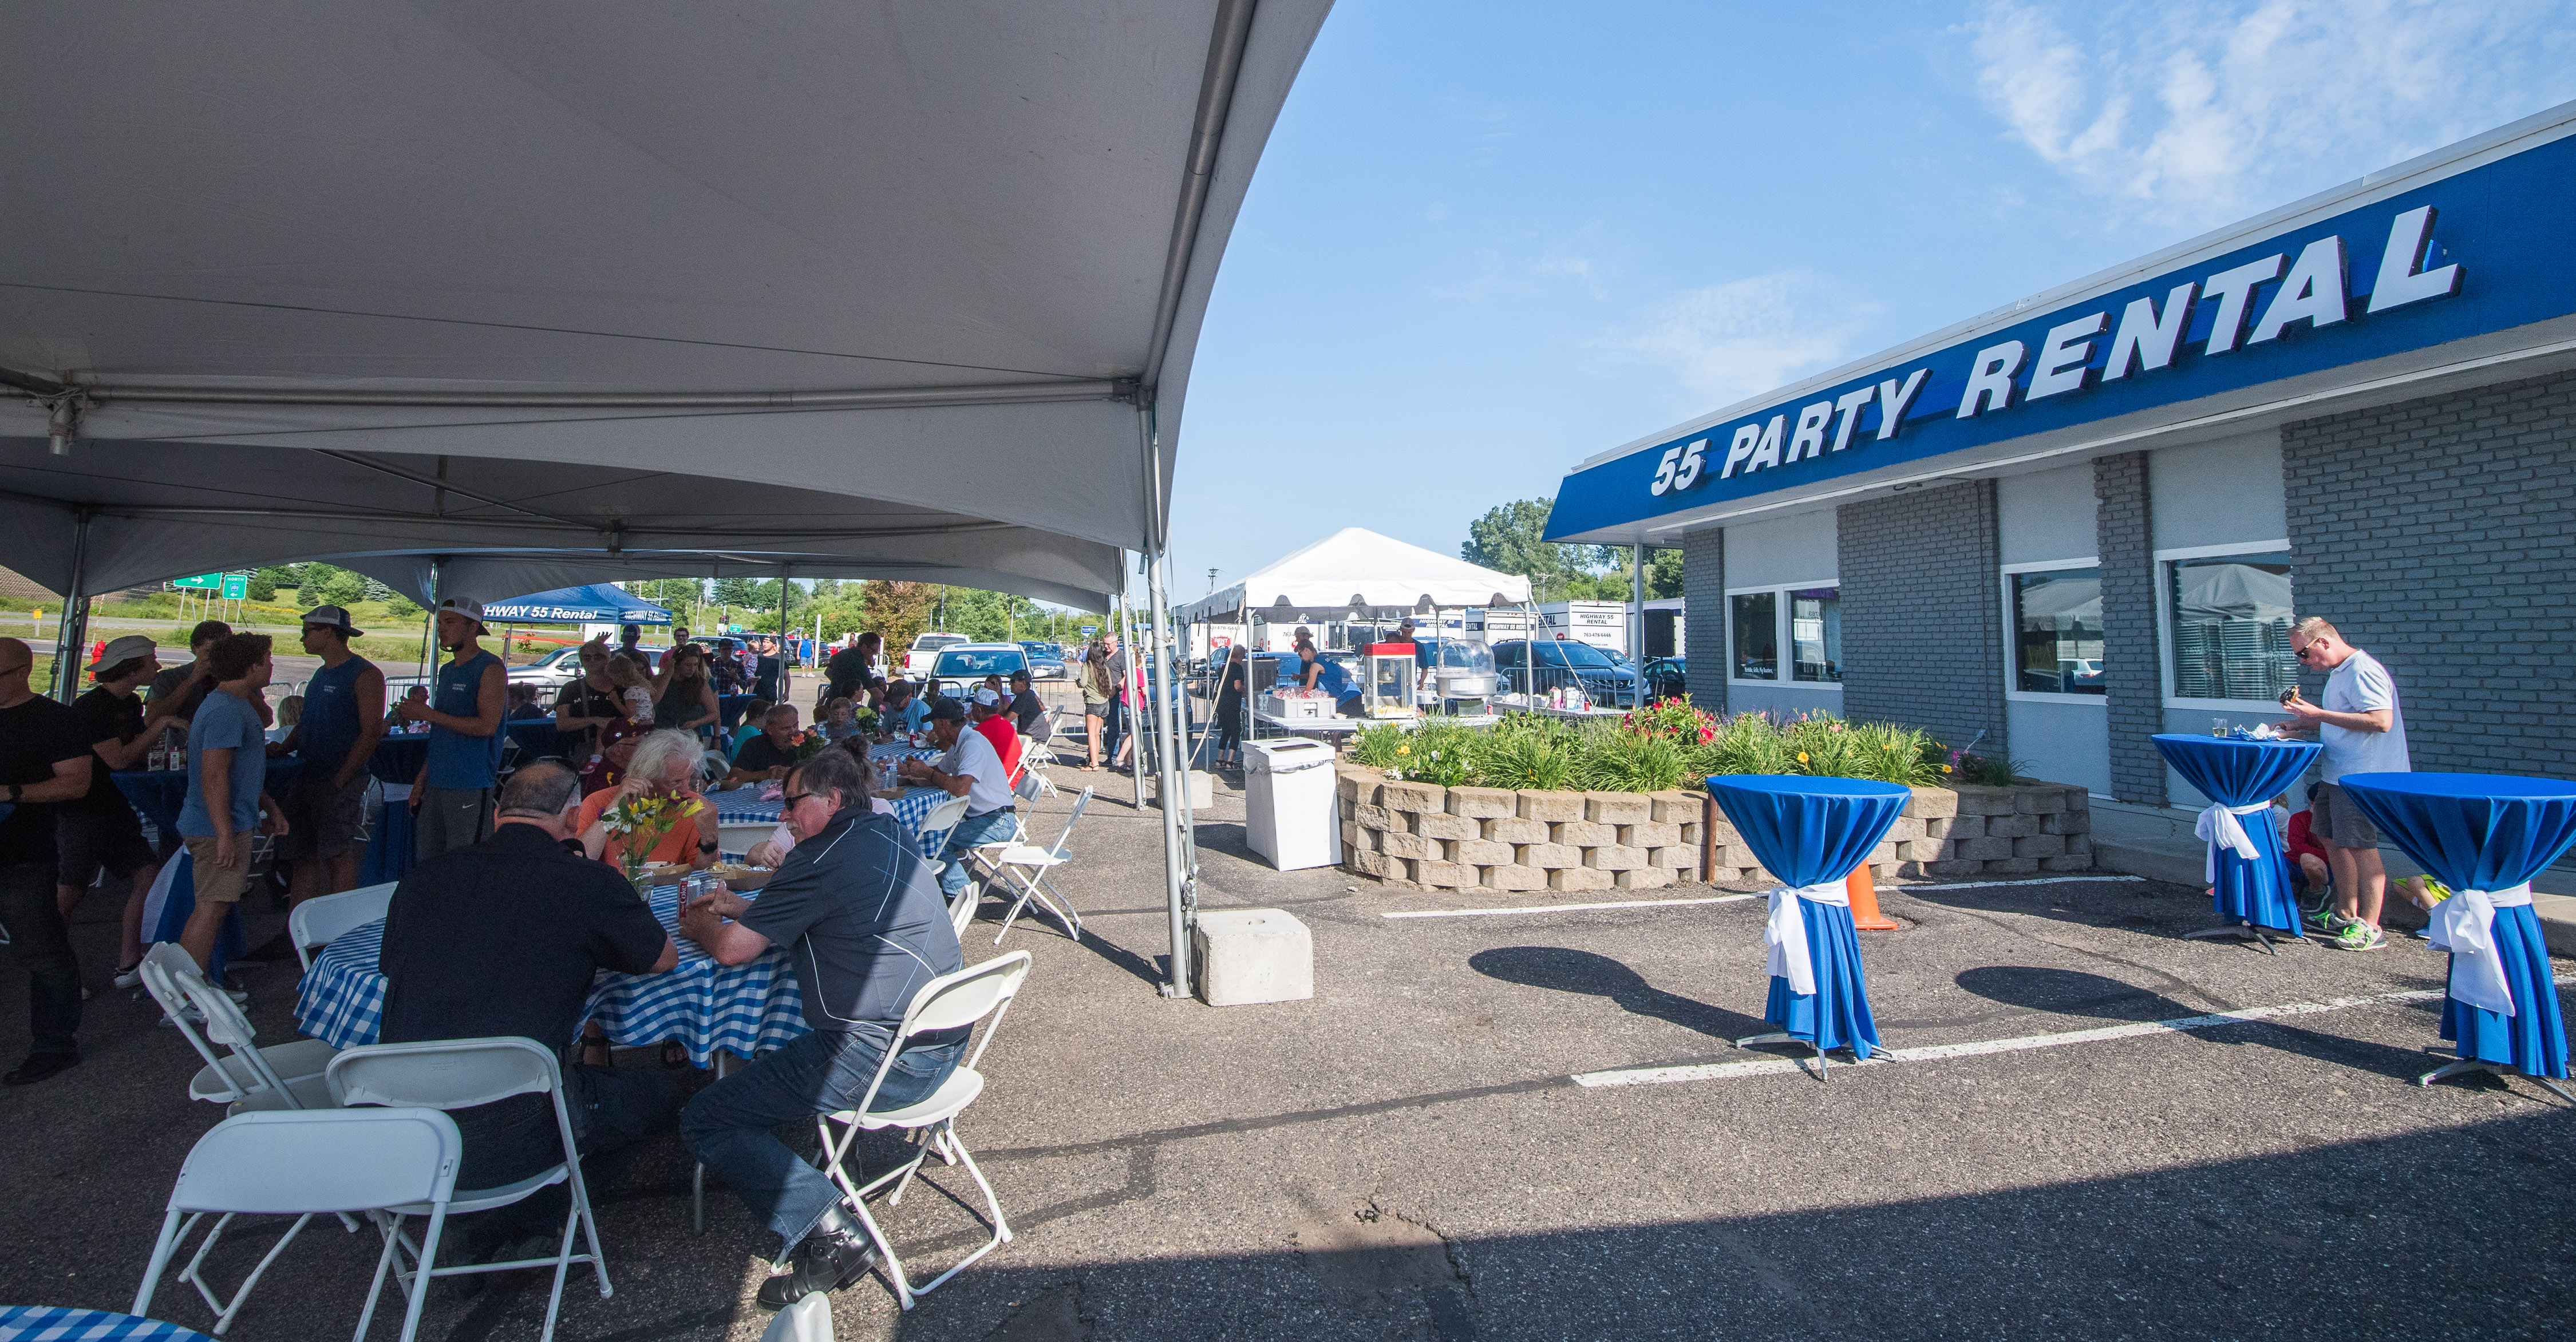 060-Highway 55 Rental-40th Anniversary-Minneapolis event photographers-www.jcoxphotography.com-July 31, 2019